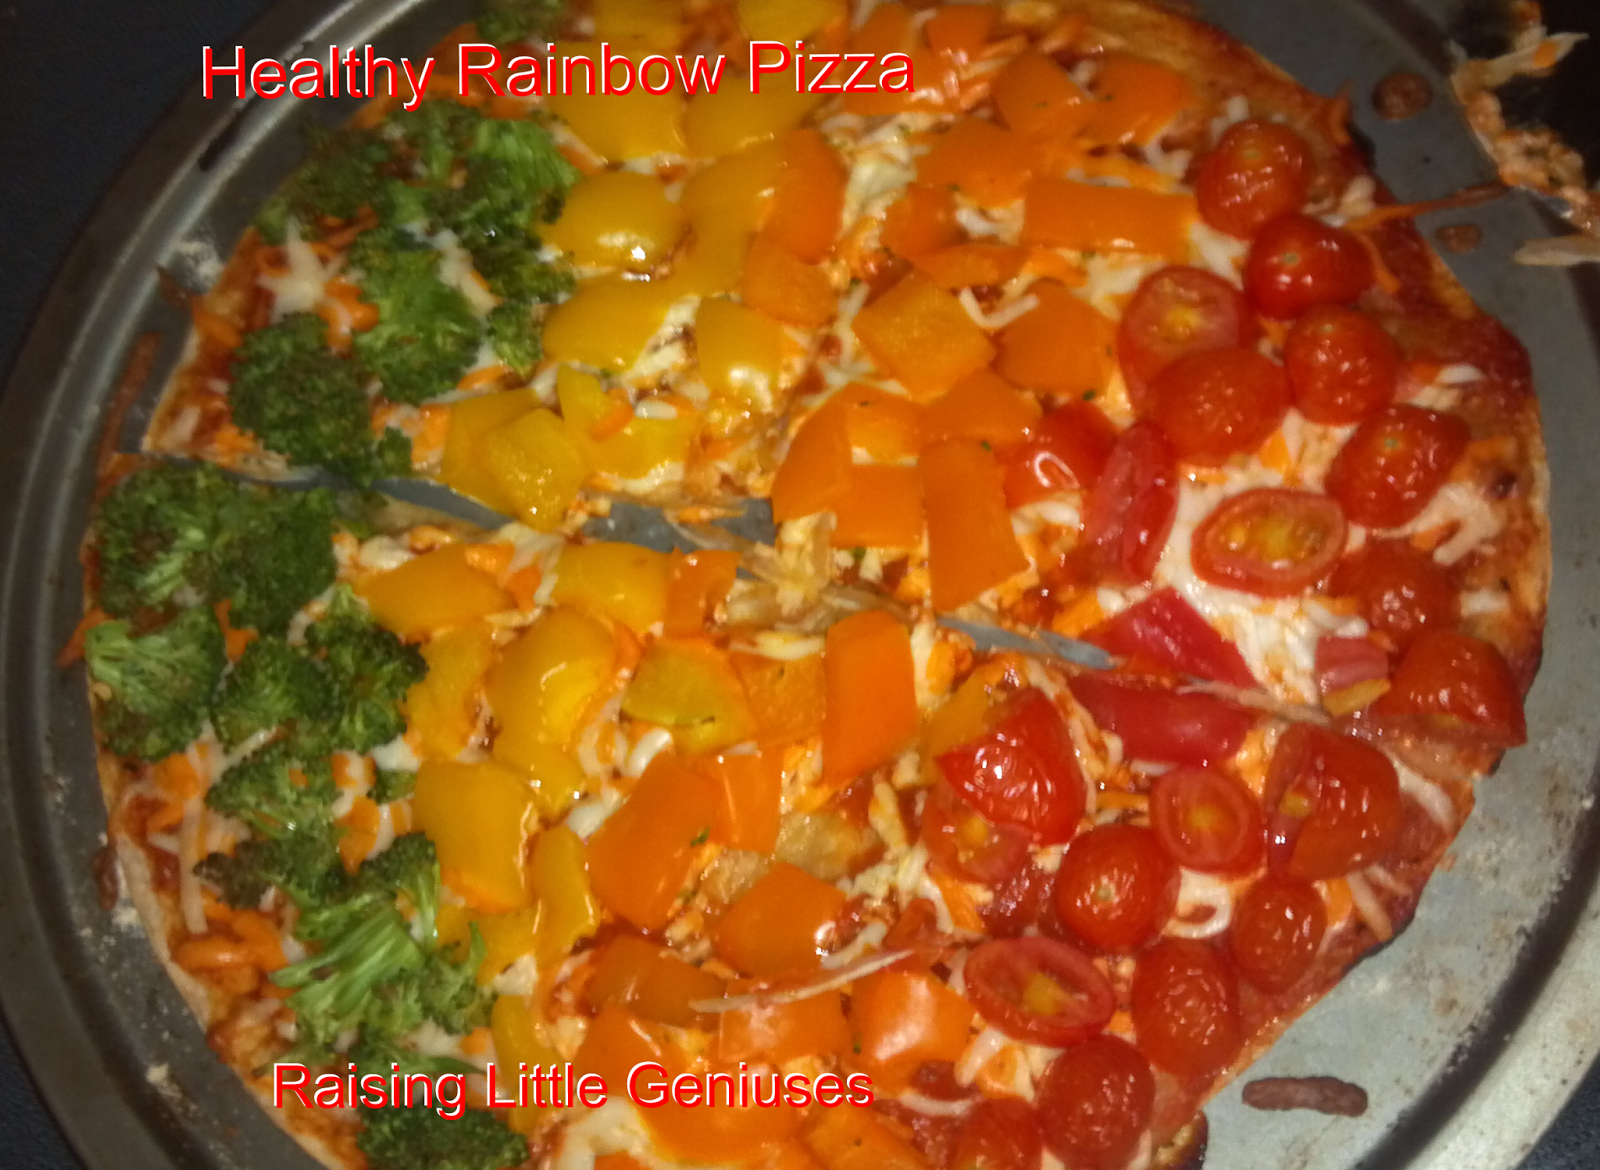 Healthy Rainbow Pizza that kids can help make